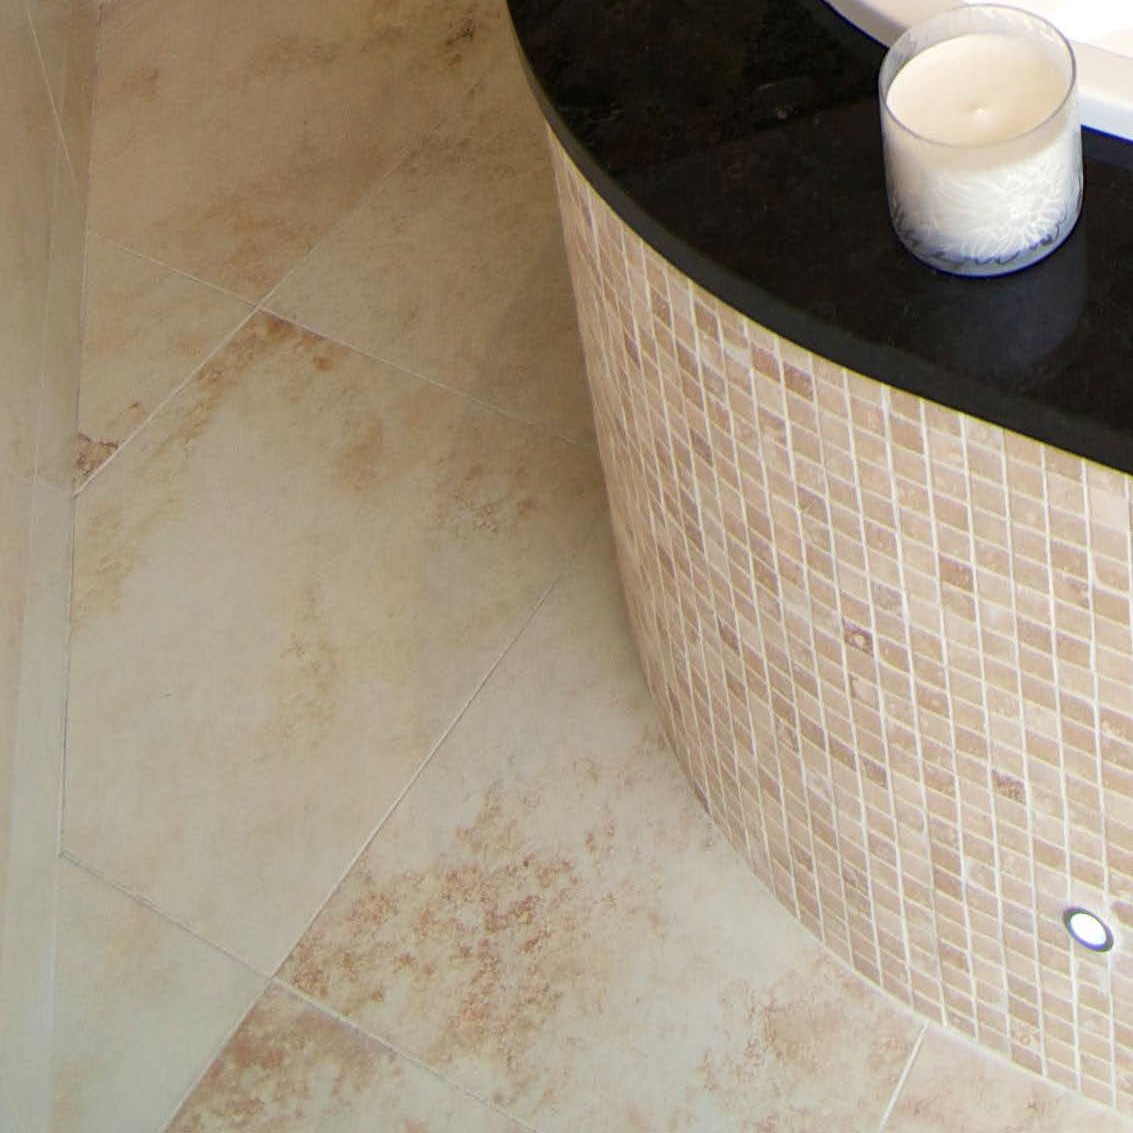 Porcelain Tiles For Sale Online With UK home Delivery.